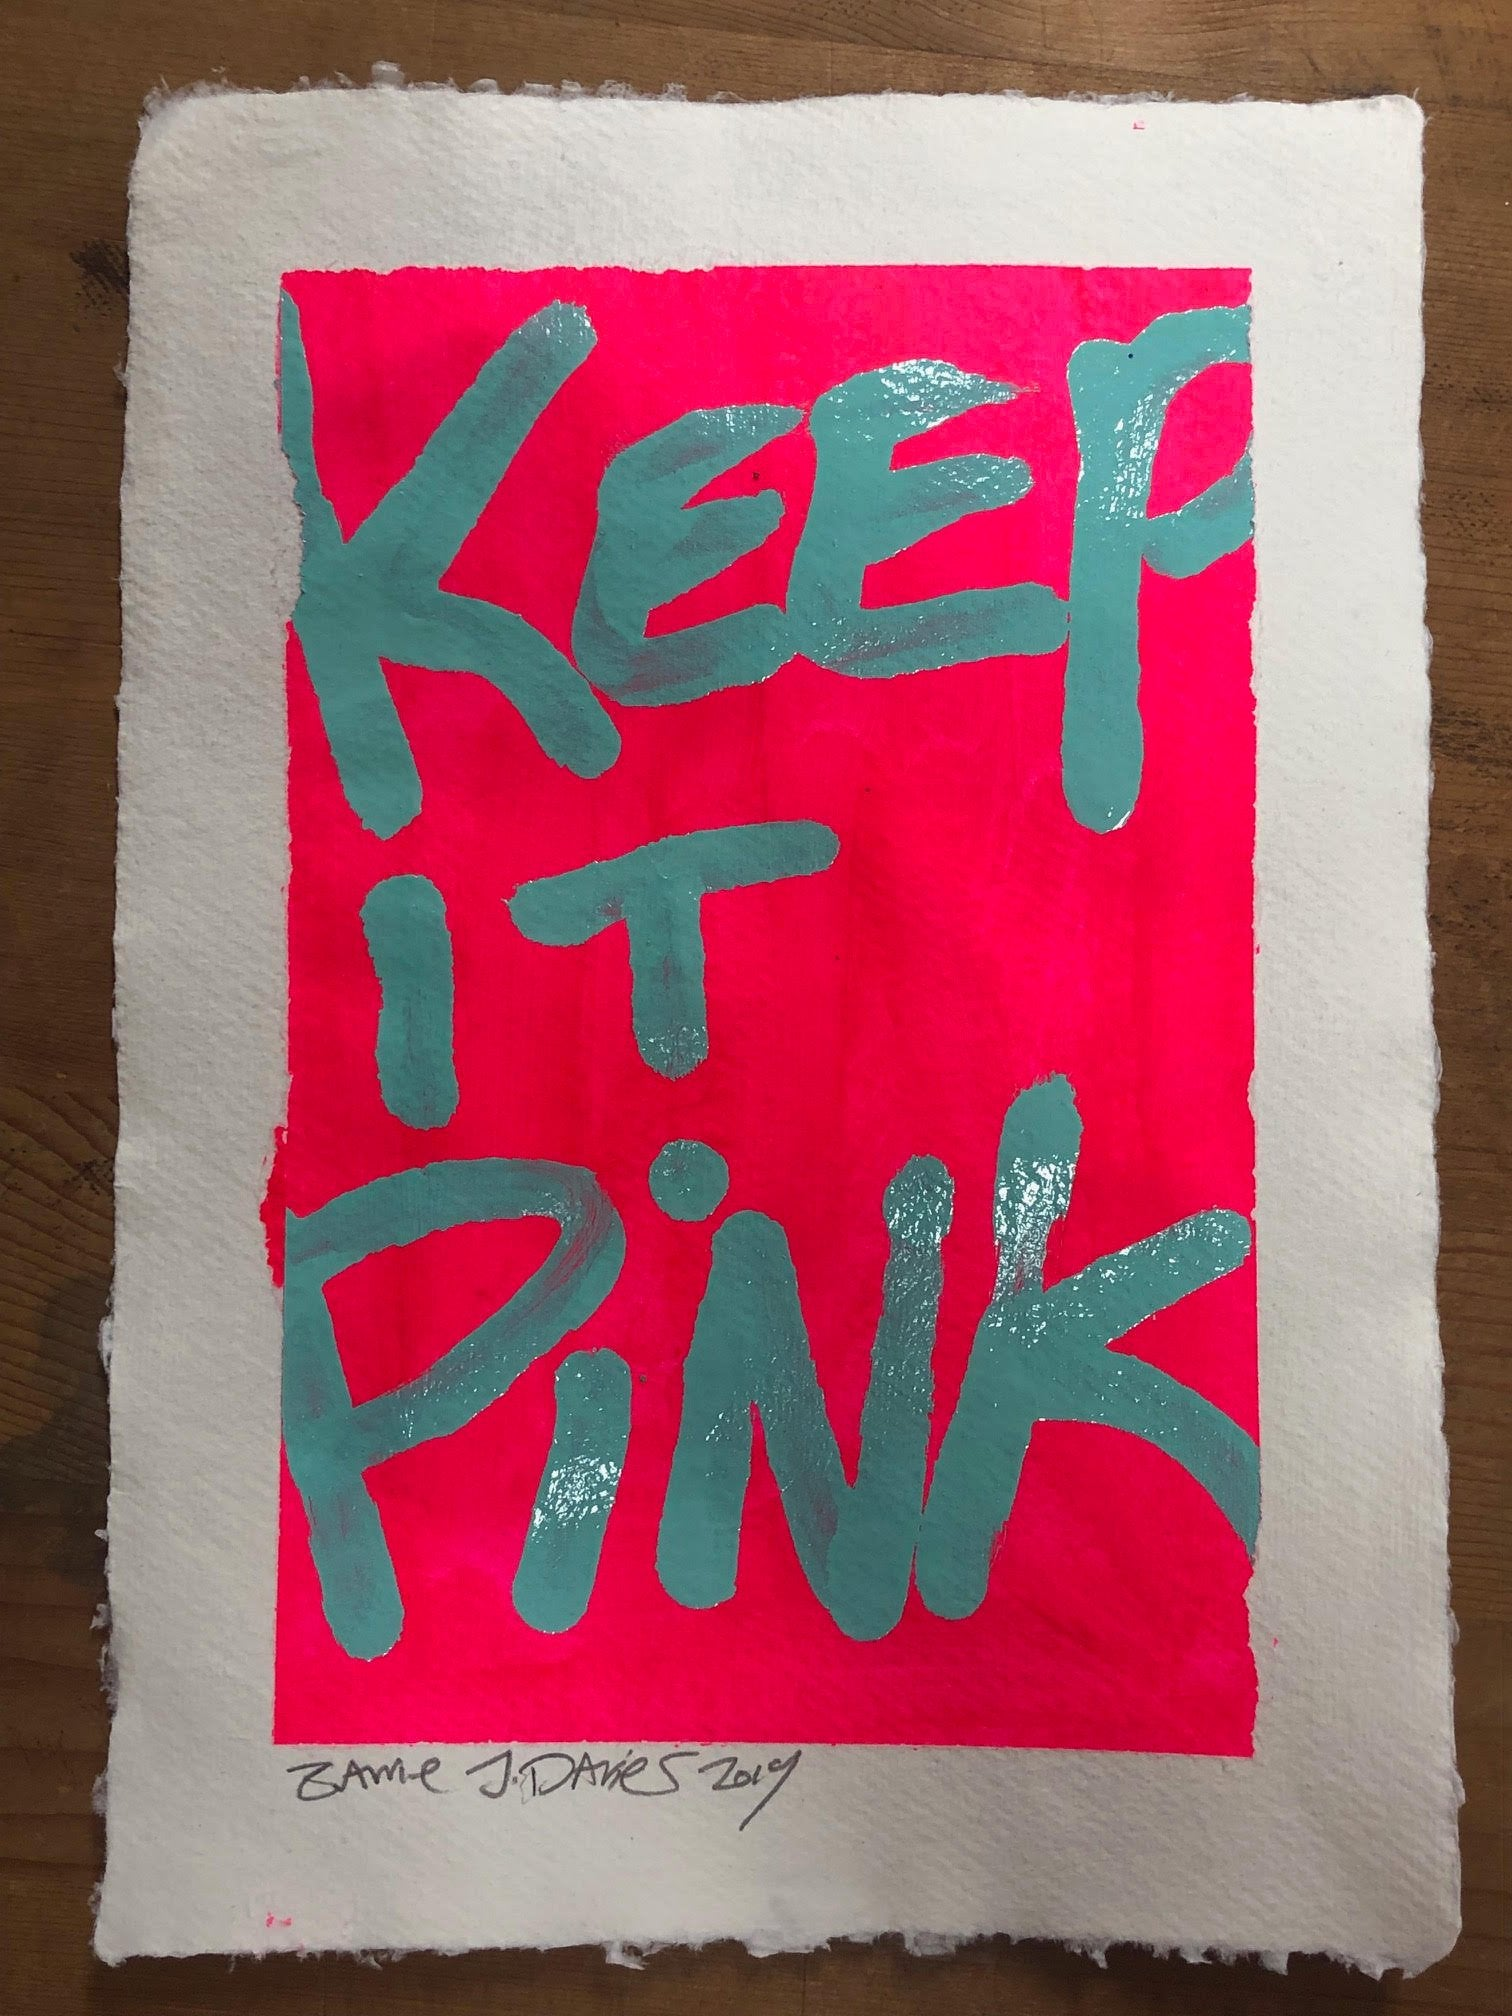 Keep it pink by Barrie J Davies 2019, paint on A4 Khadi White Cotton Paper unframed, with deckled raw edges. Barrie J Davies is an Artist - Pop Art and Street art inspired Artist based in Brighton England UK - Pop Art Paintings, Street Art Prints & Editions available.